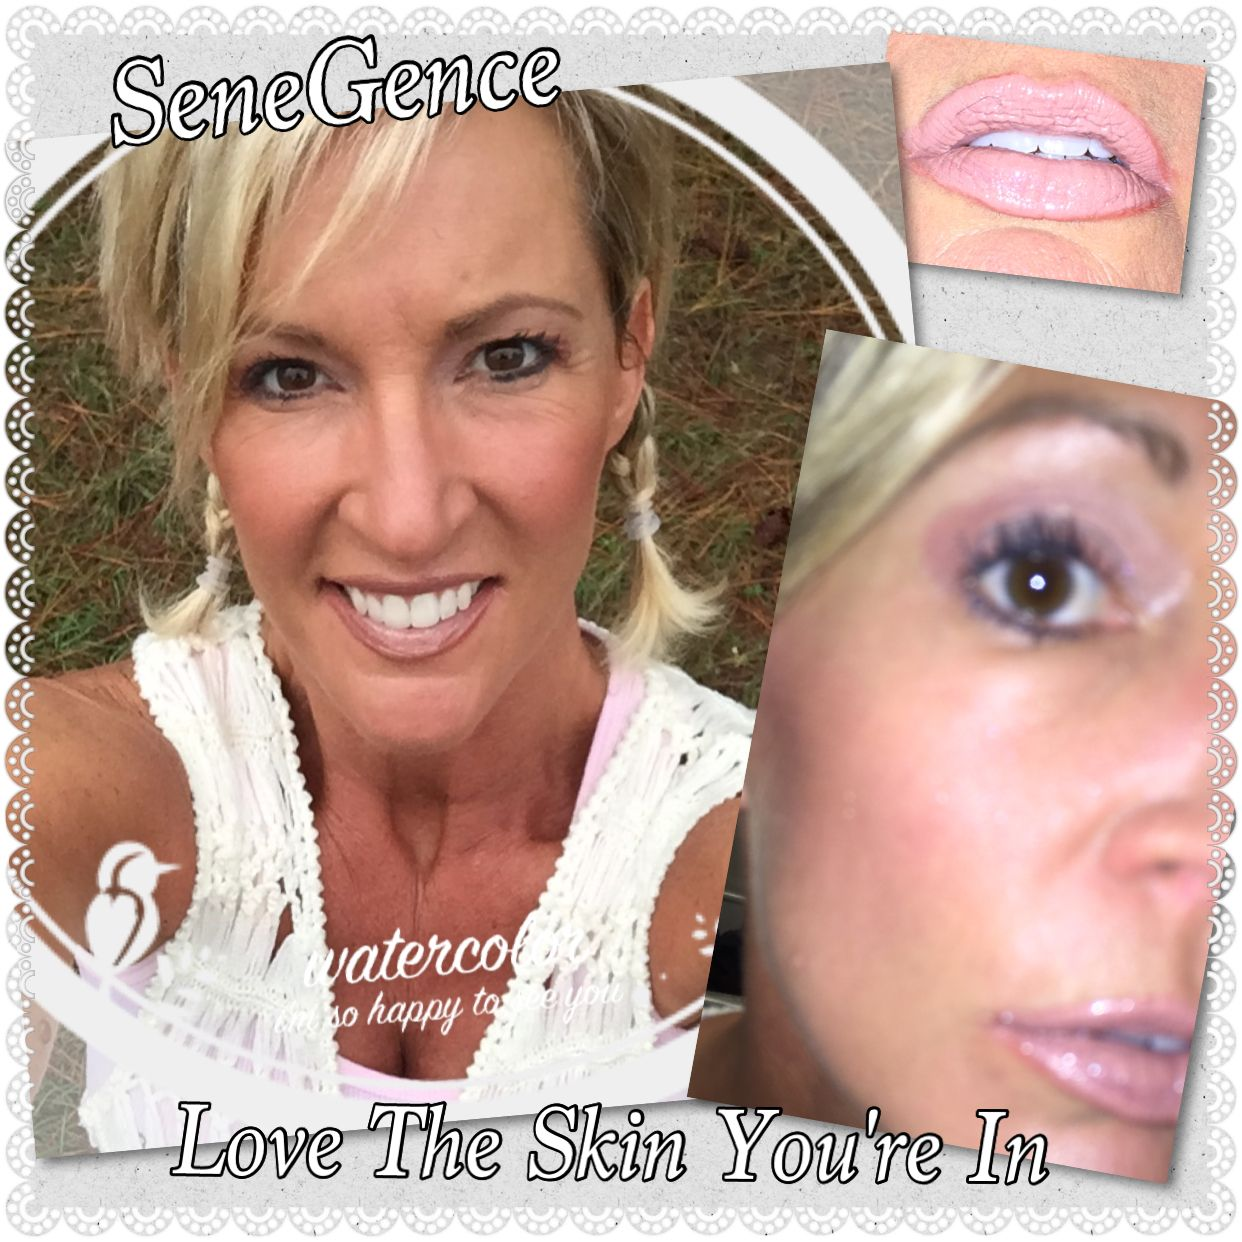 #LoveTheSkinYouAreIn featuring #LipSense First Love with Persimmon #LinerSense and Silver Glitter Gloss and Pink Posey & Whisper Pink #ShadowSense on my eyes with Moca Java ShadowSense on my brows. I also have Candlelight ShadowSense highlighting under the arch of my brows and under my eyes. #SeneGence #makeup is so versatile and #longlasting. It's great for any serious #cowgirl and for us #girlhunters